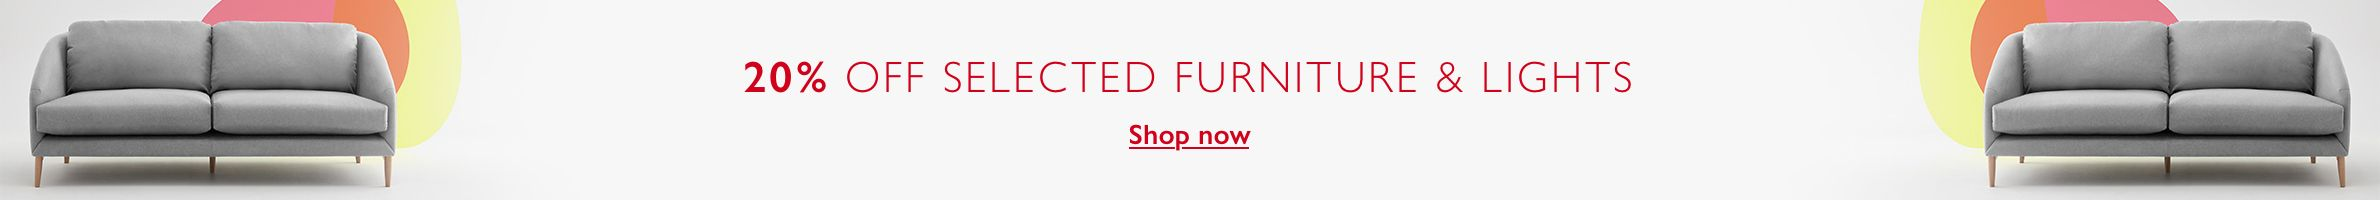 3ae77b6956 Furniture   Lighting Easter Offers